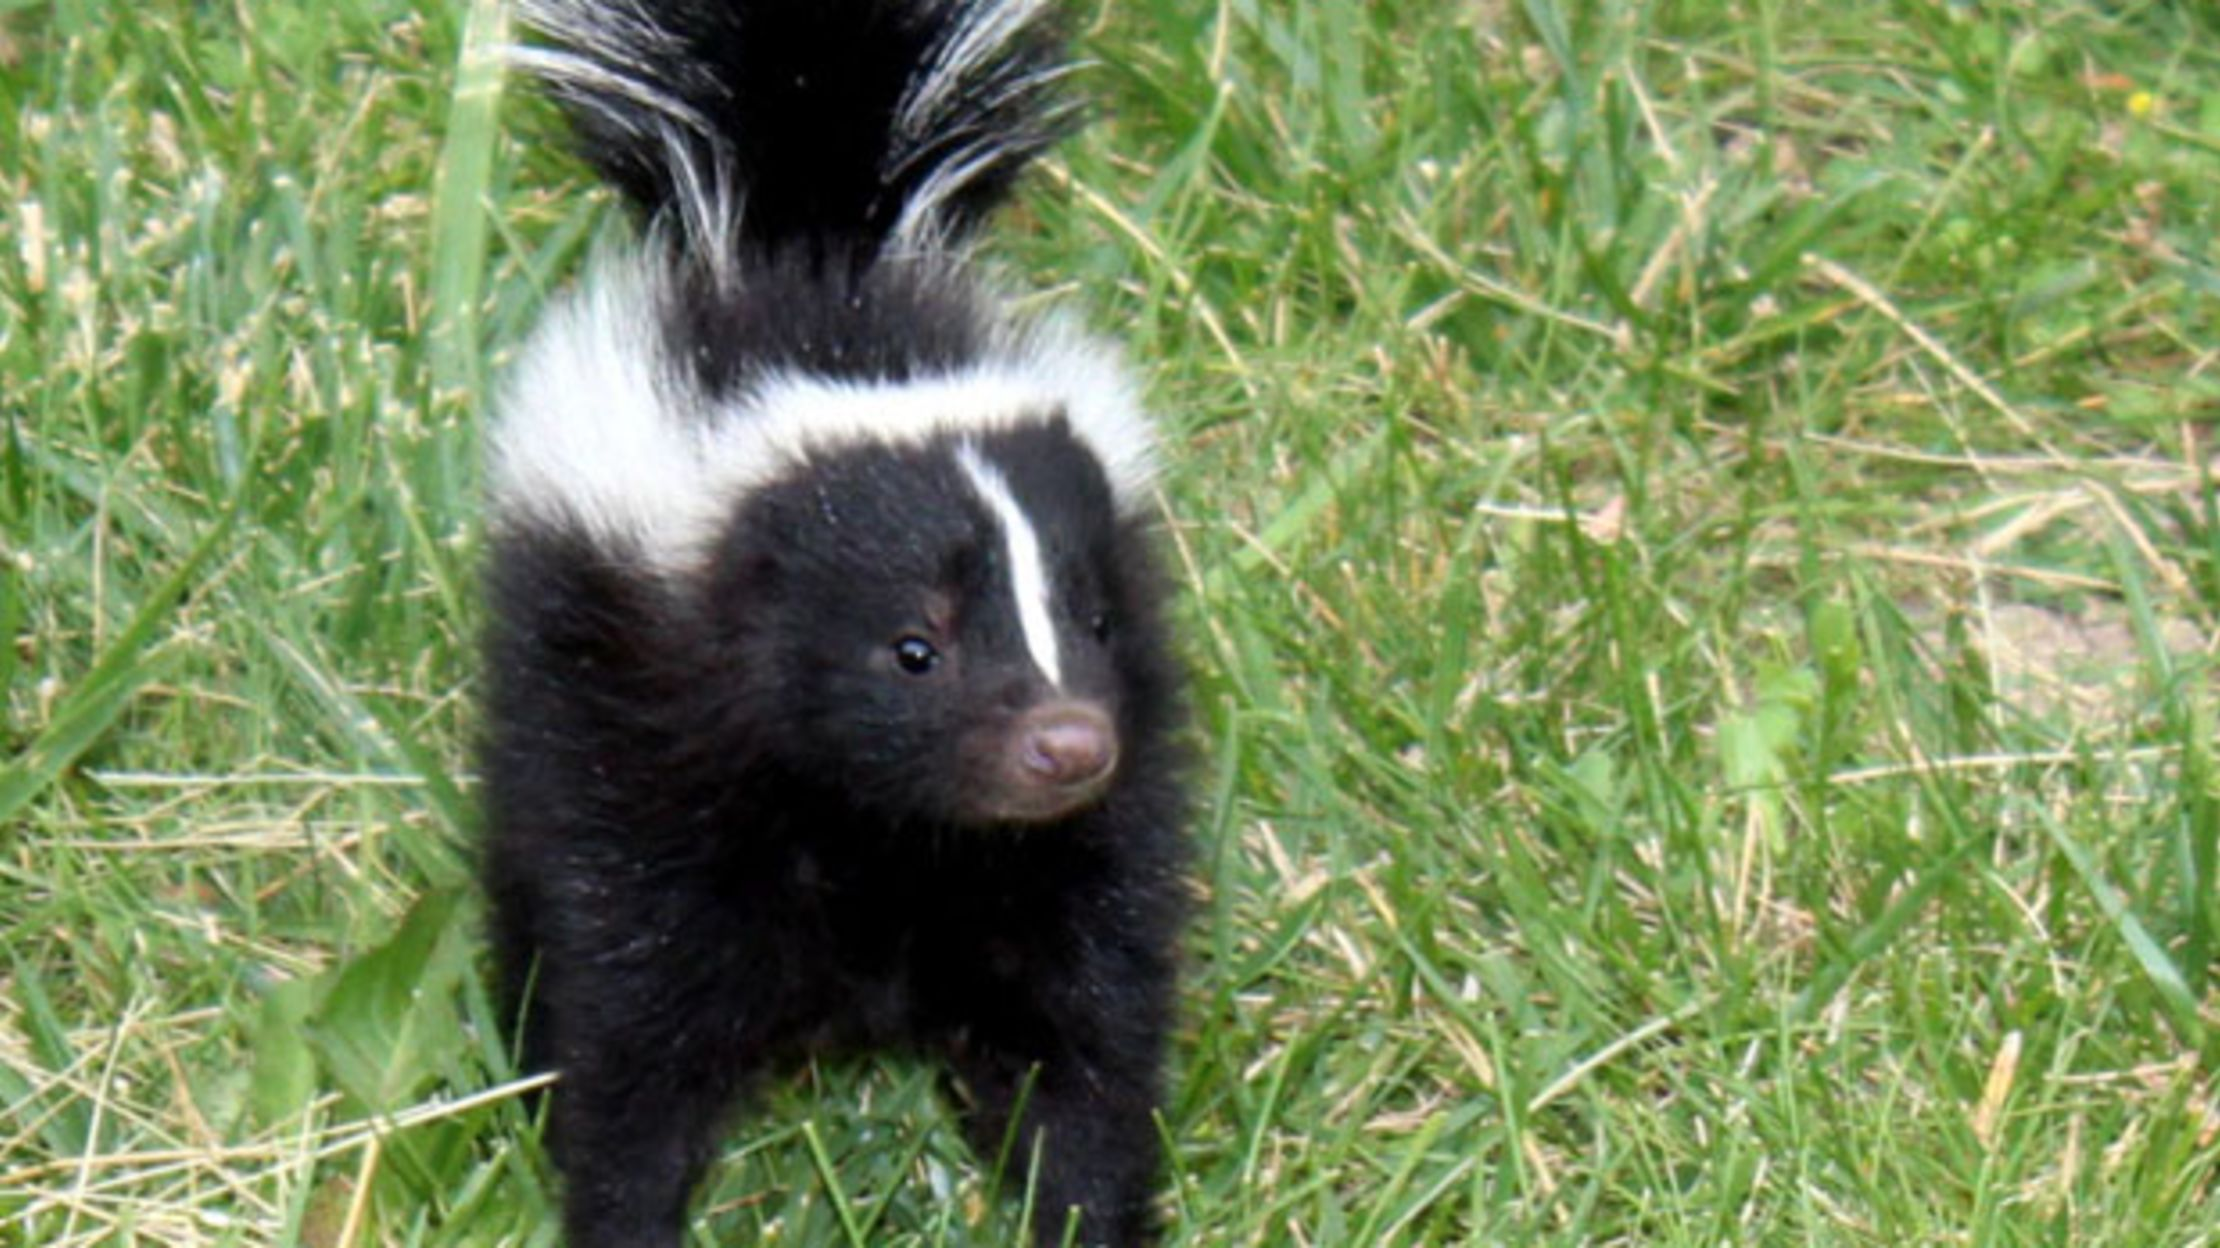 Lesser Known Names For Baby Animals